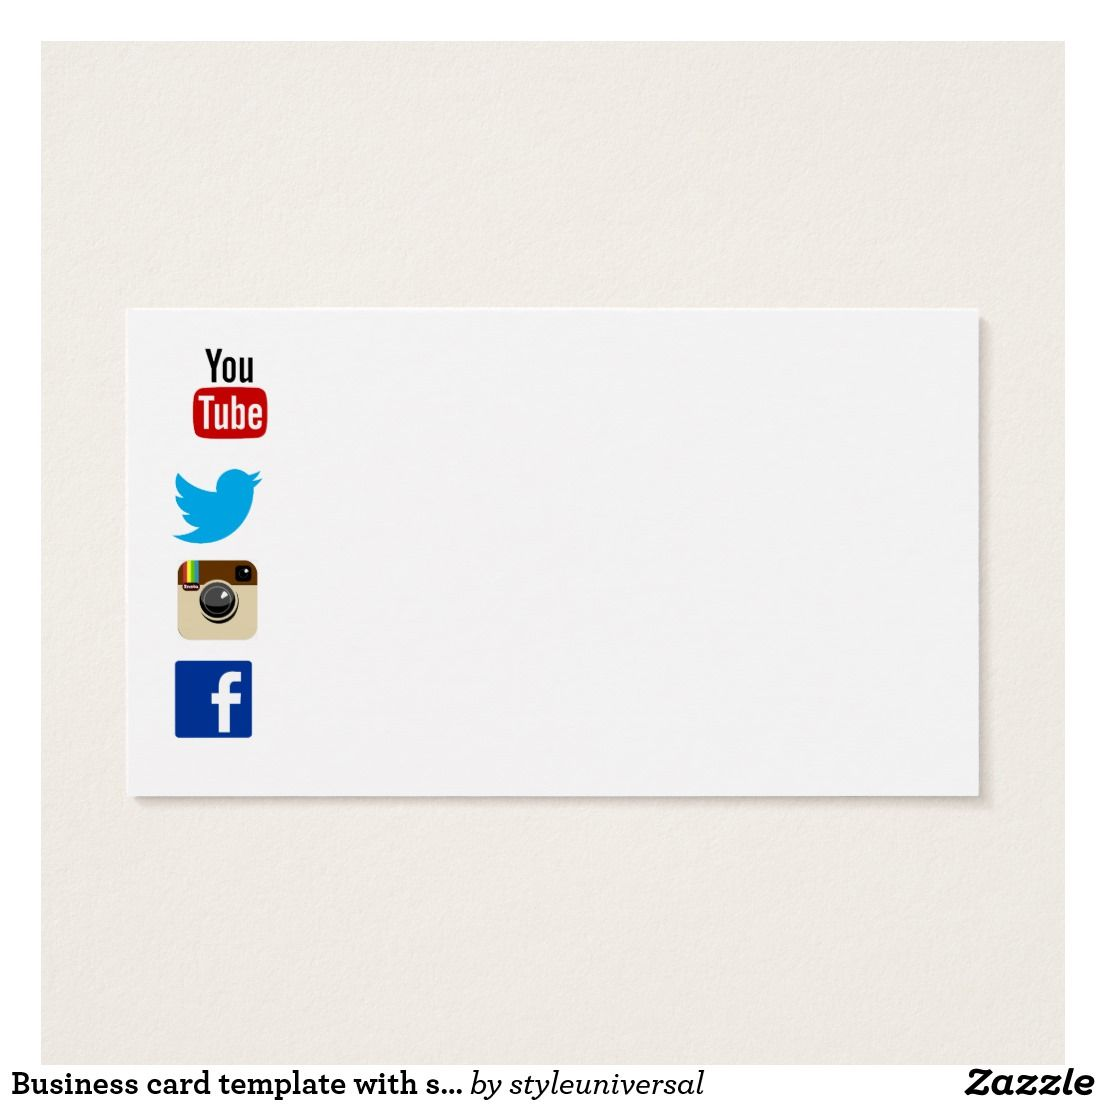 Business Card Template With Social Media Icons 2 Zazzle Com Business Card Template Social Media Icons Cards